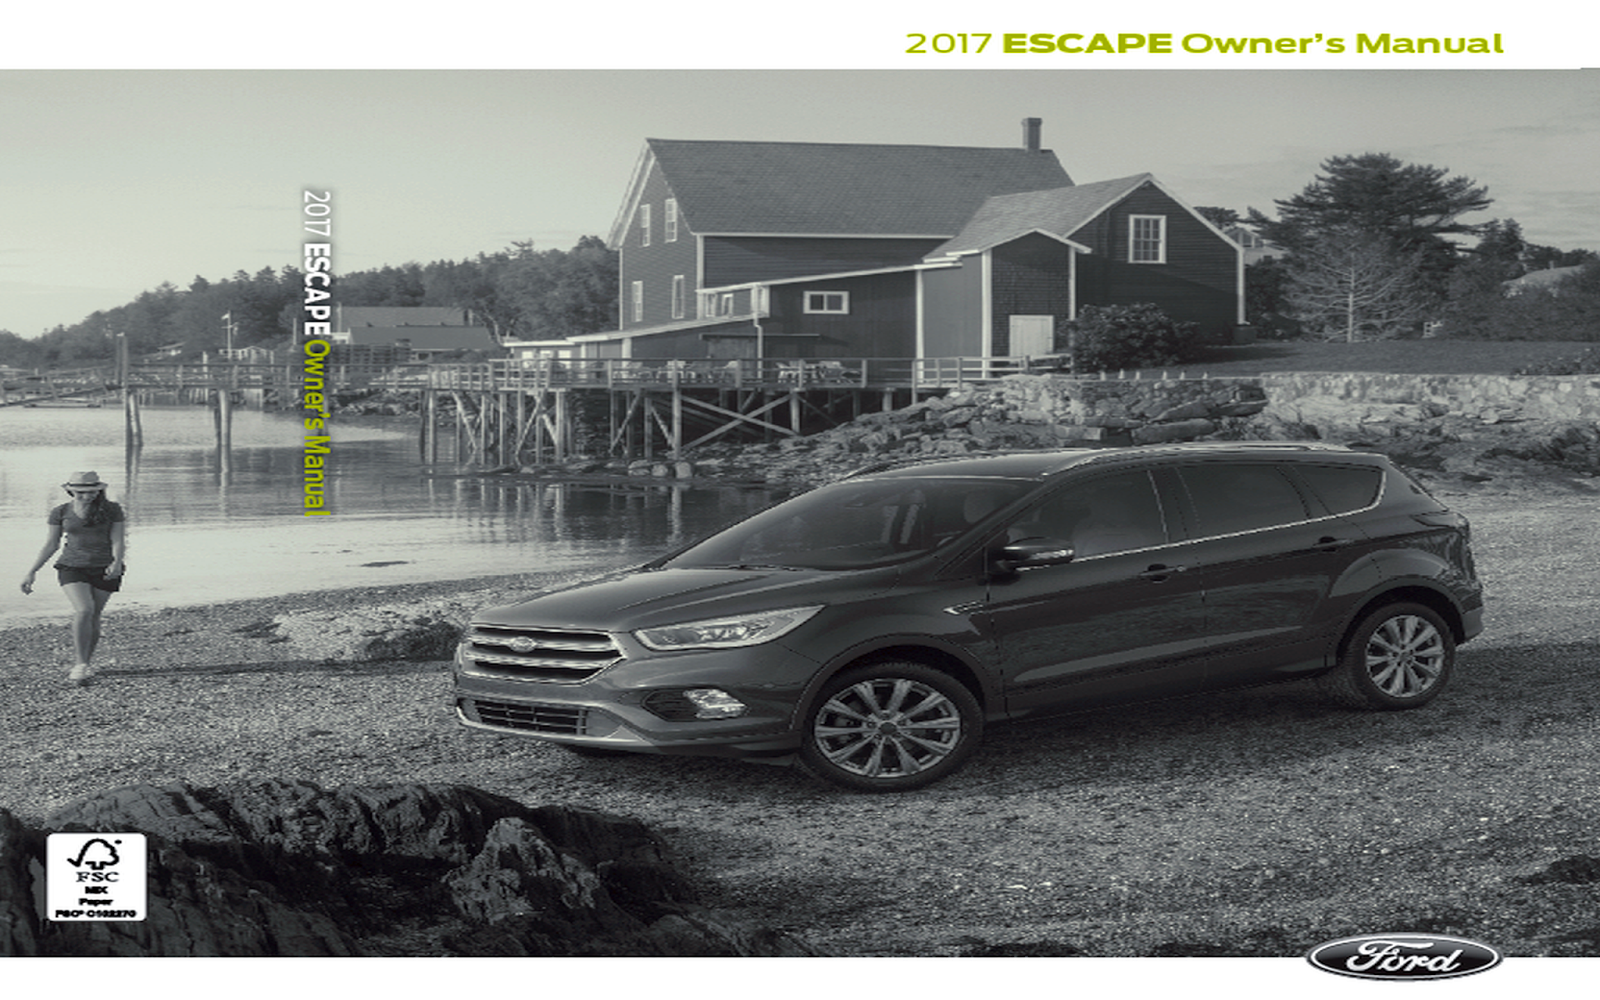 2017 Ford Escape Manual PDF Download